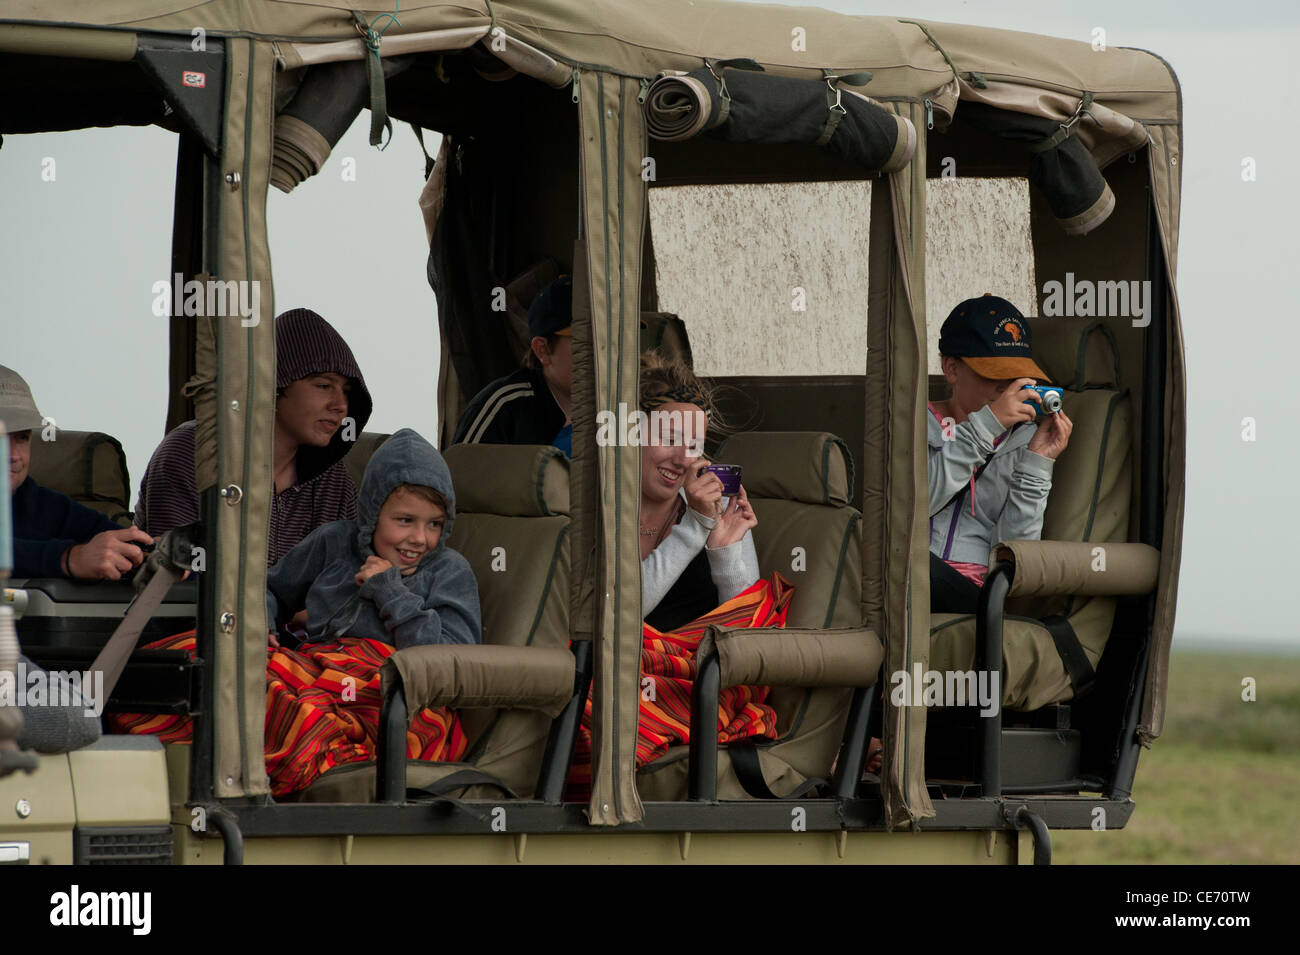 On-lookers on Safari enjoying the sighting of wild animals, Serengeti, Tanzania - Stock Image